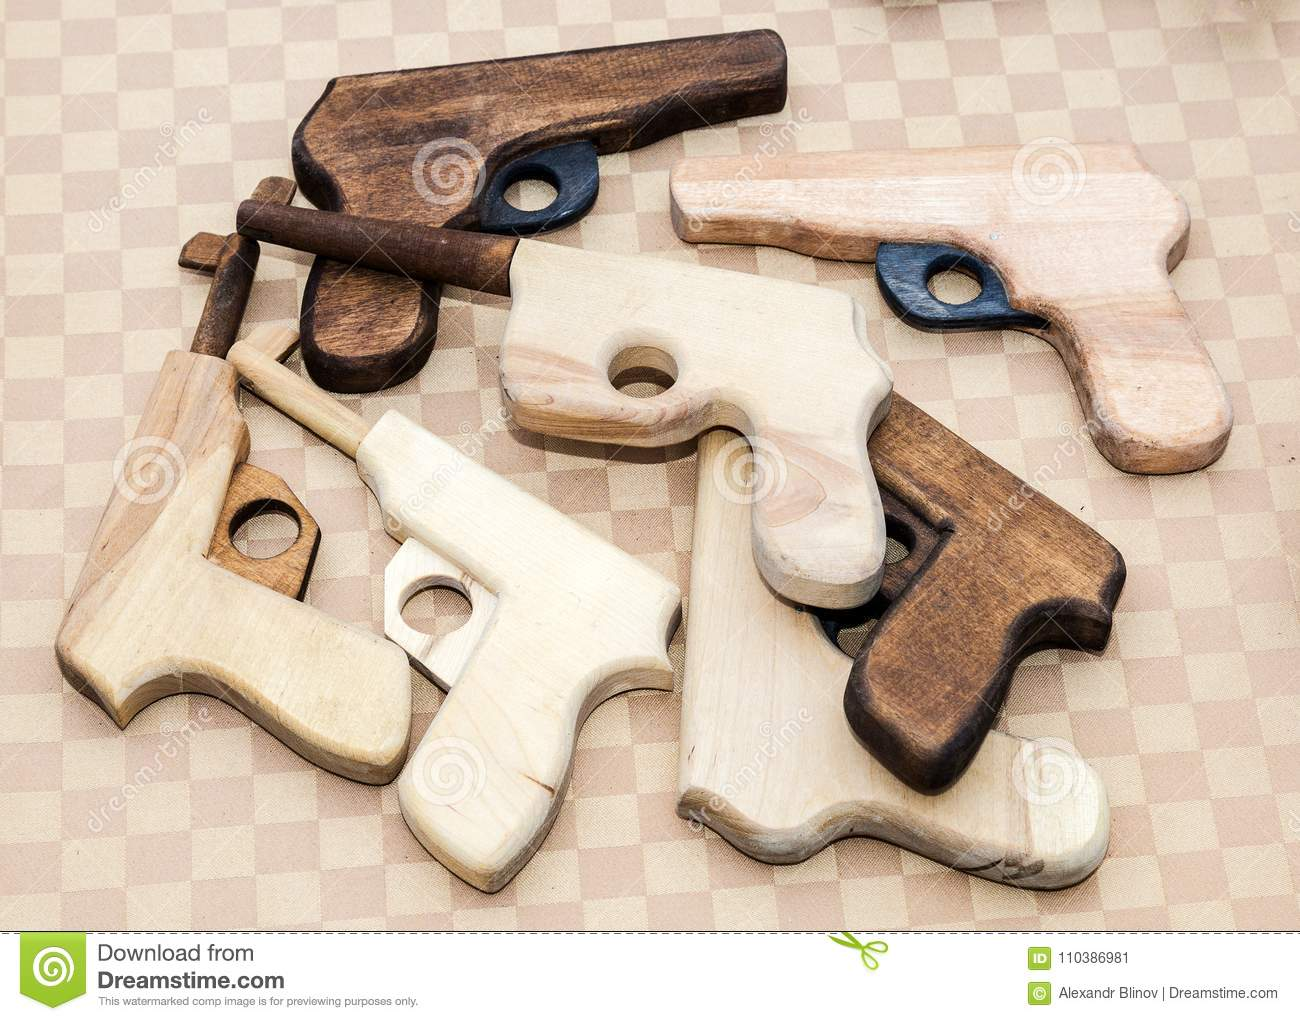 handmade wooden toy pistols for children stock image - image